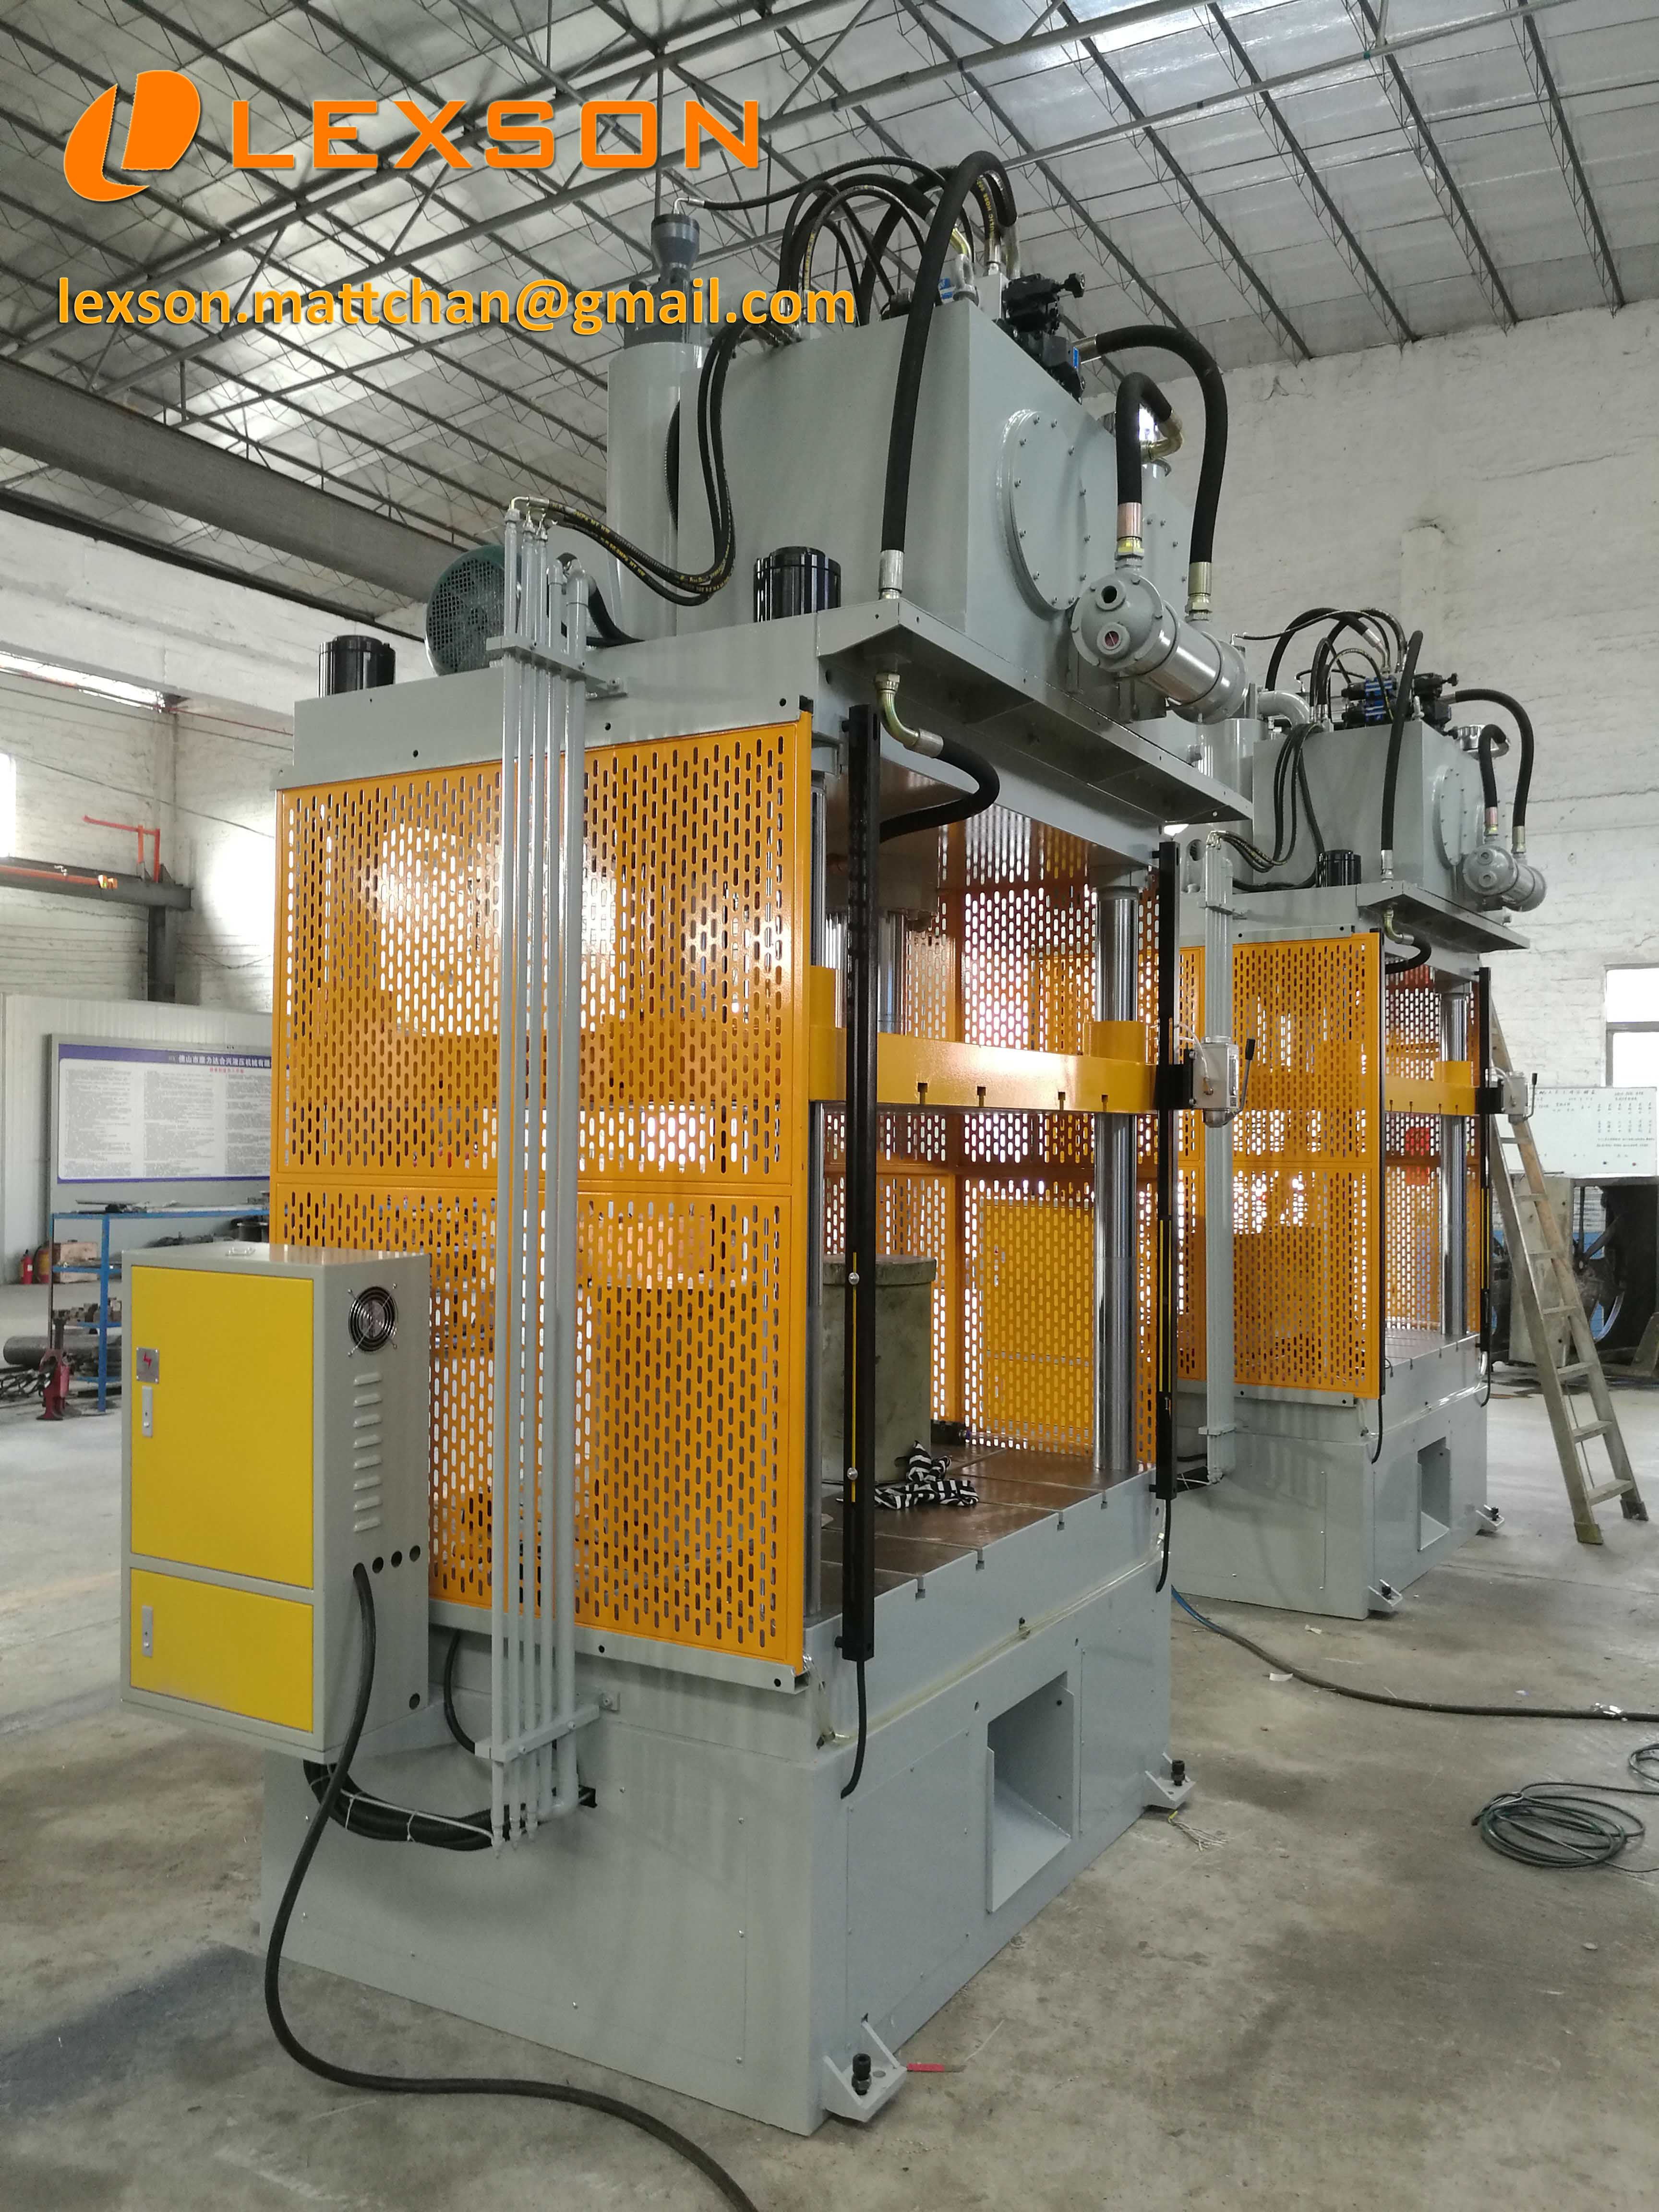 Custom Hydraulic Press Manufacturer Heavy Duty 75 Ton 4 Post Hydraulic Trim Press